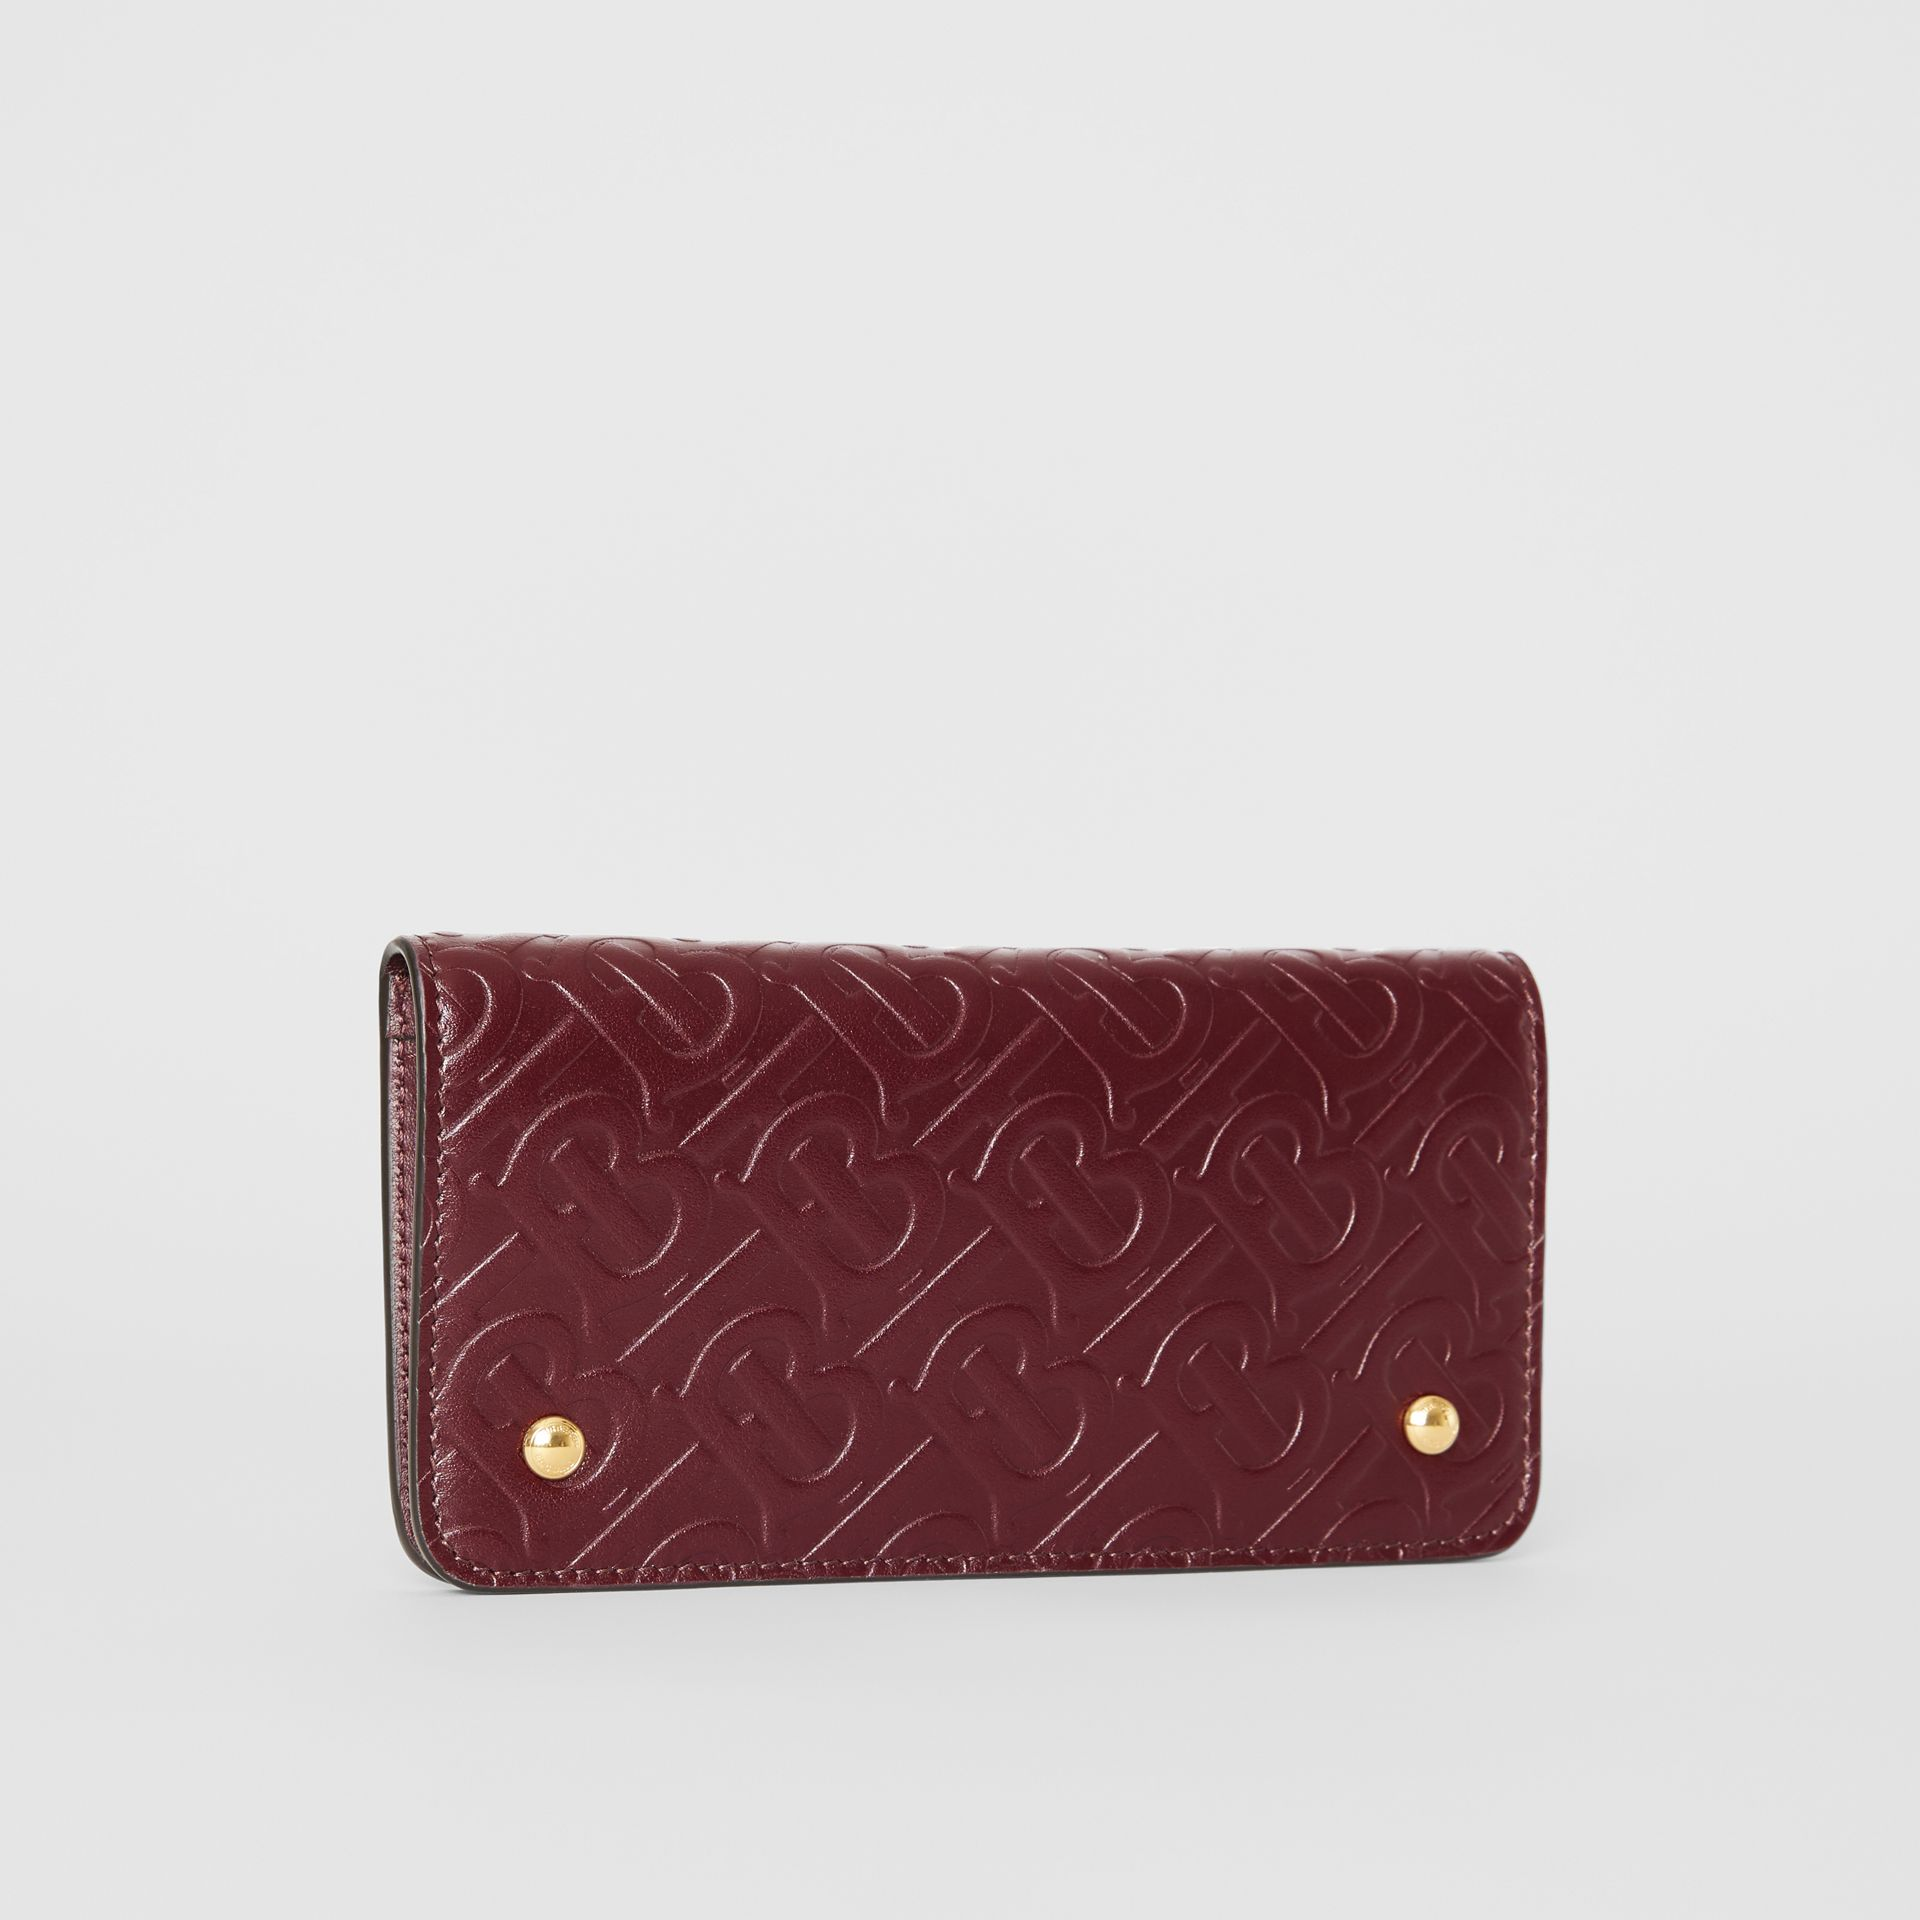 Monogram Leather Phone Wallet in Oxblood - Women | Burberry United Kingdom - gallery image 4